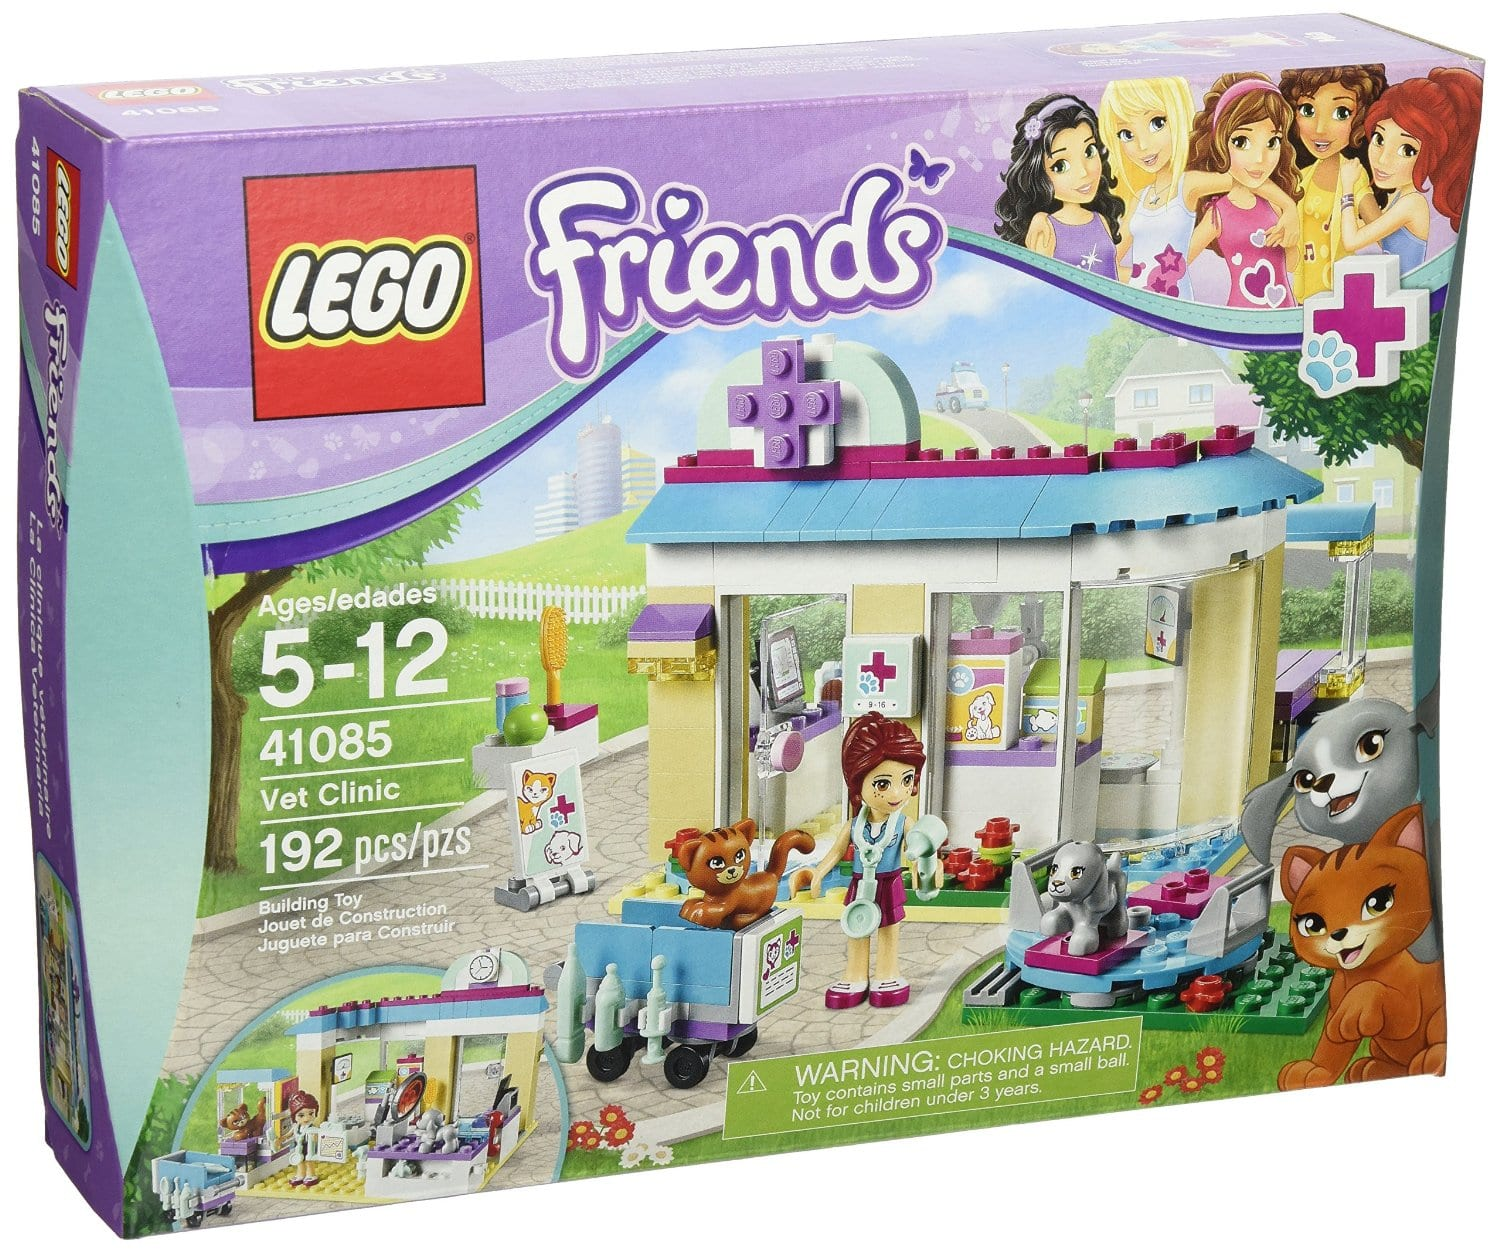 Popular Christmas Toys For Girls : Top reviews of hottest toys for girls as christmas gift